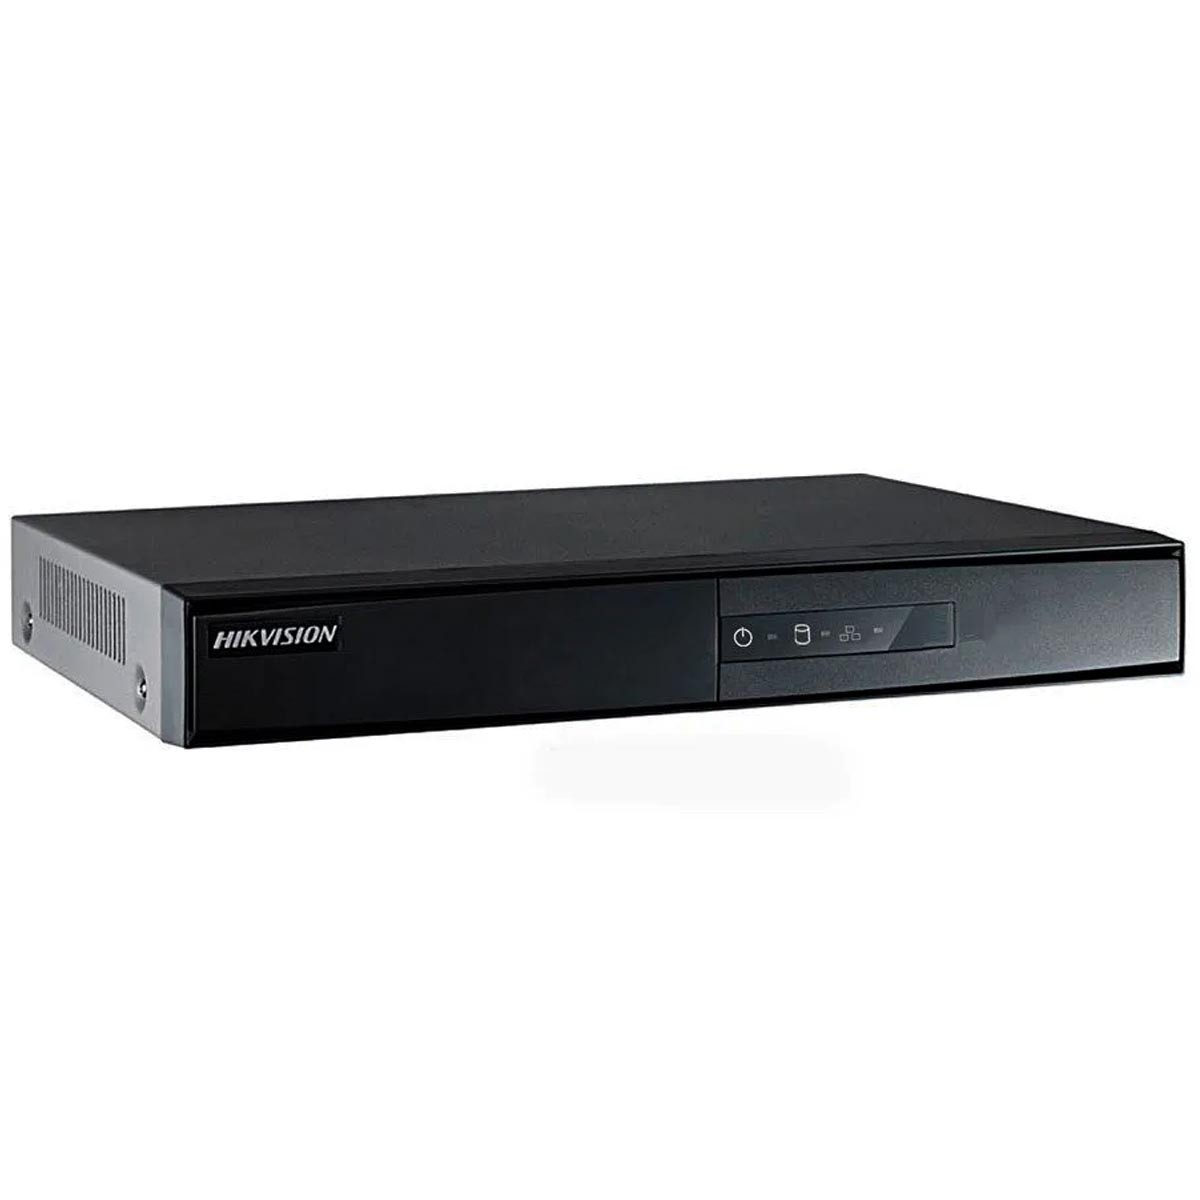 DVR STAND ALONE HIKVISION 1MP 16 CANAIS COM HD 1 TB DS-7216HGHI-F1/N